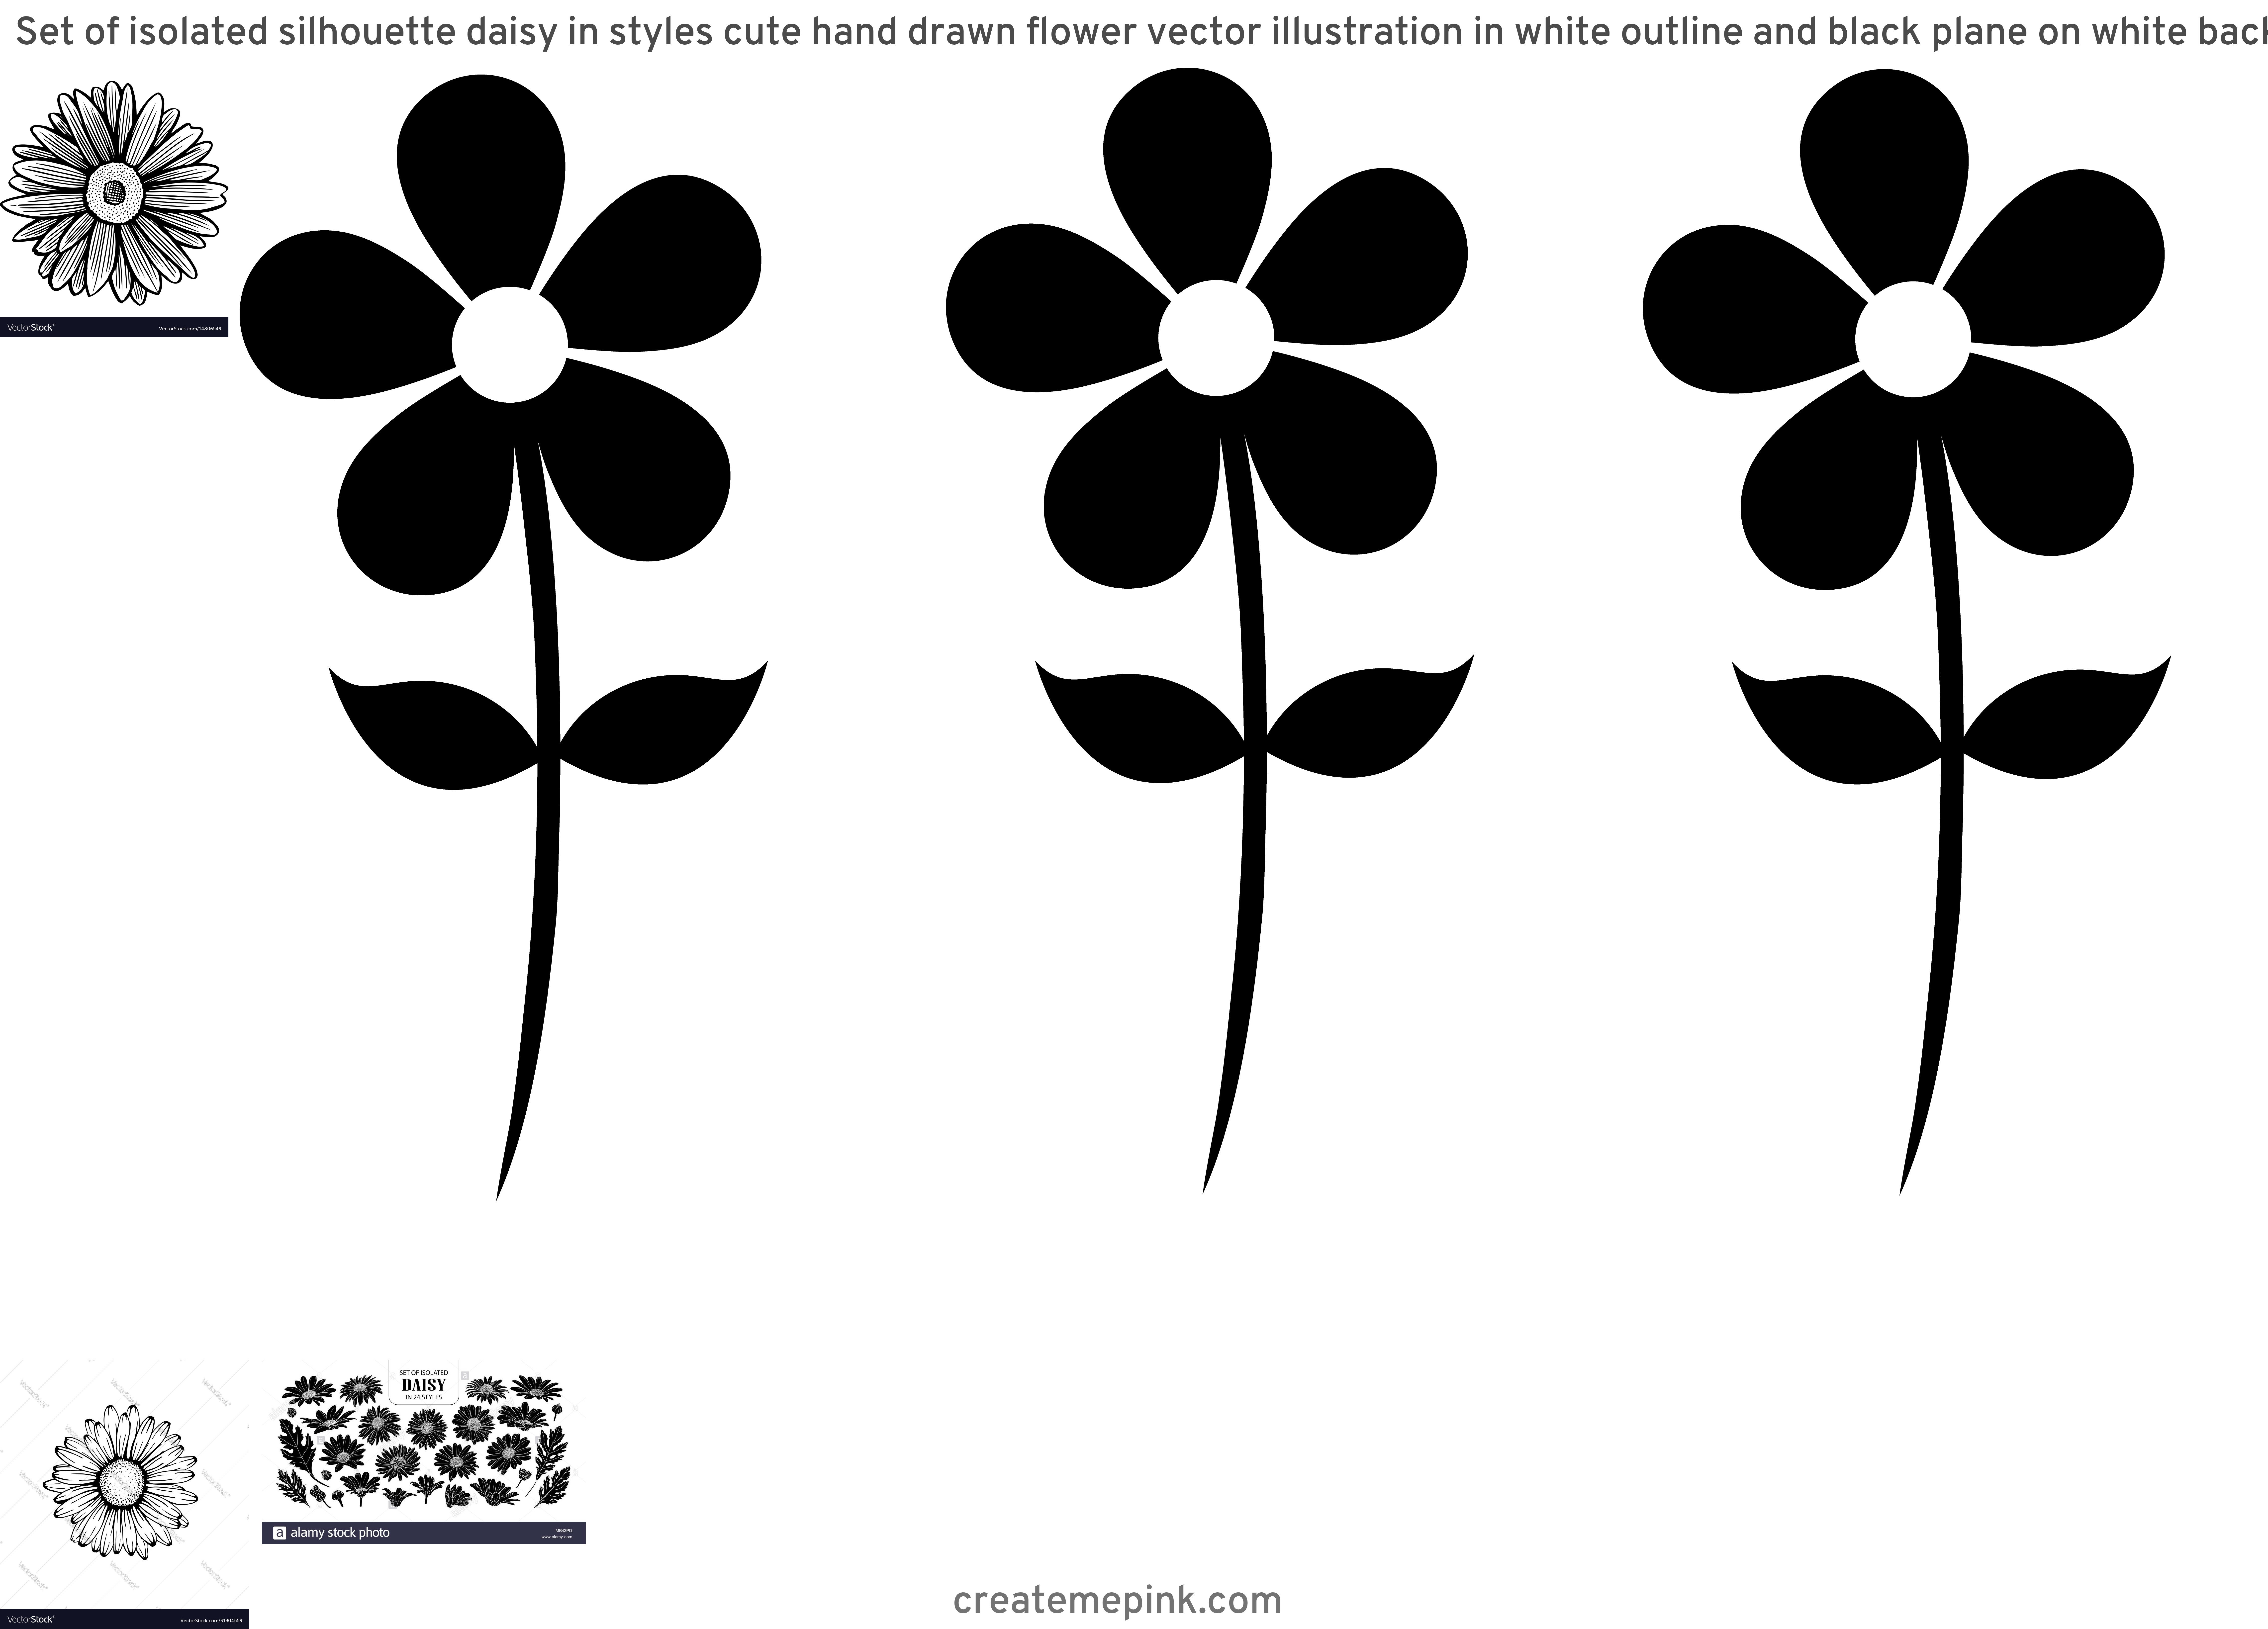 Flower Daisey Black Vector Art: Set Of Isolated Silhouette Daisy In Styles Cute Hand Drawn Flower Vector Illustration In White Outline And Black Plane On White Background Image